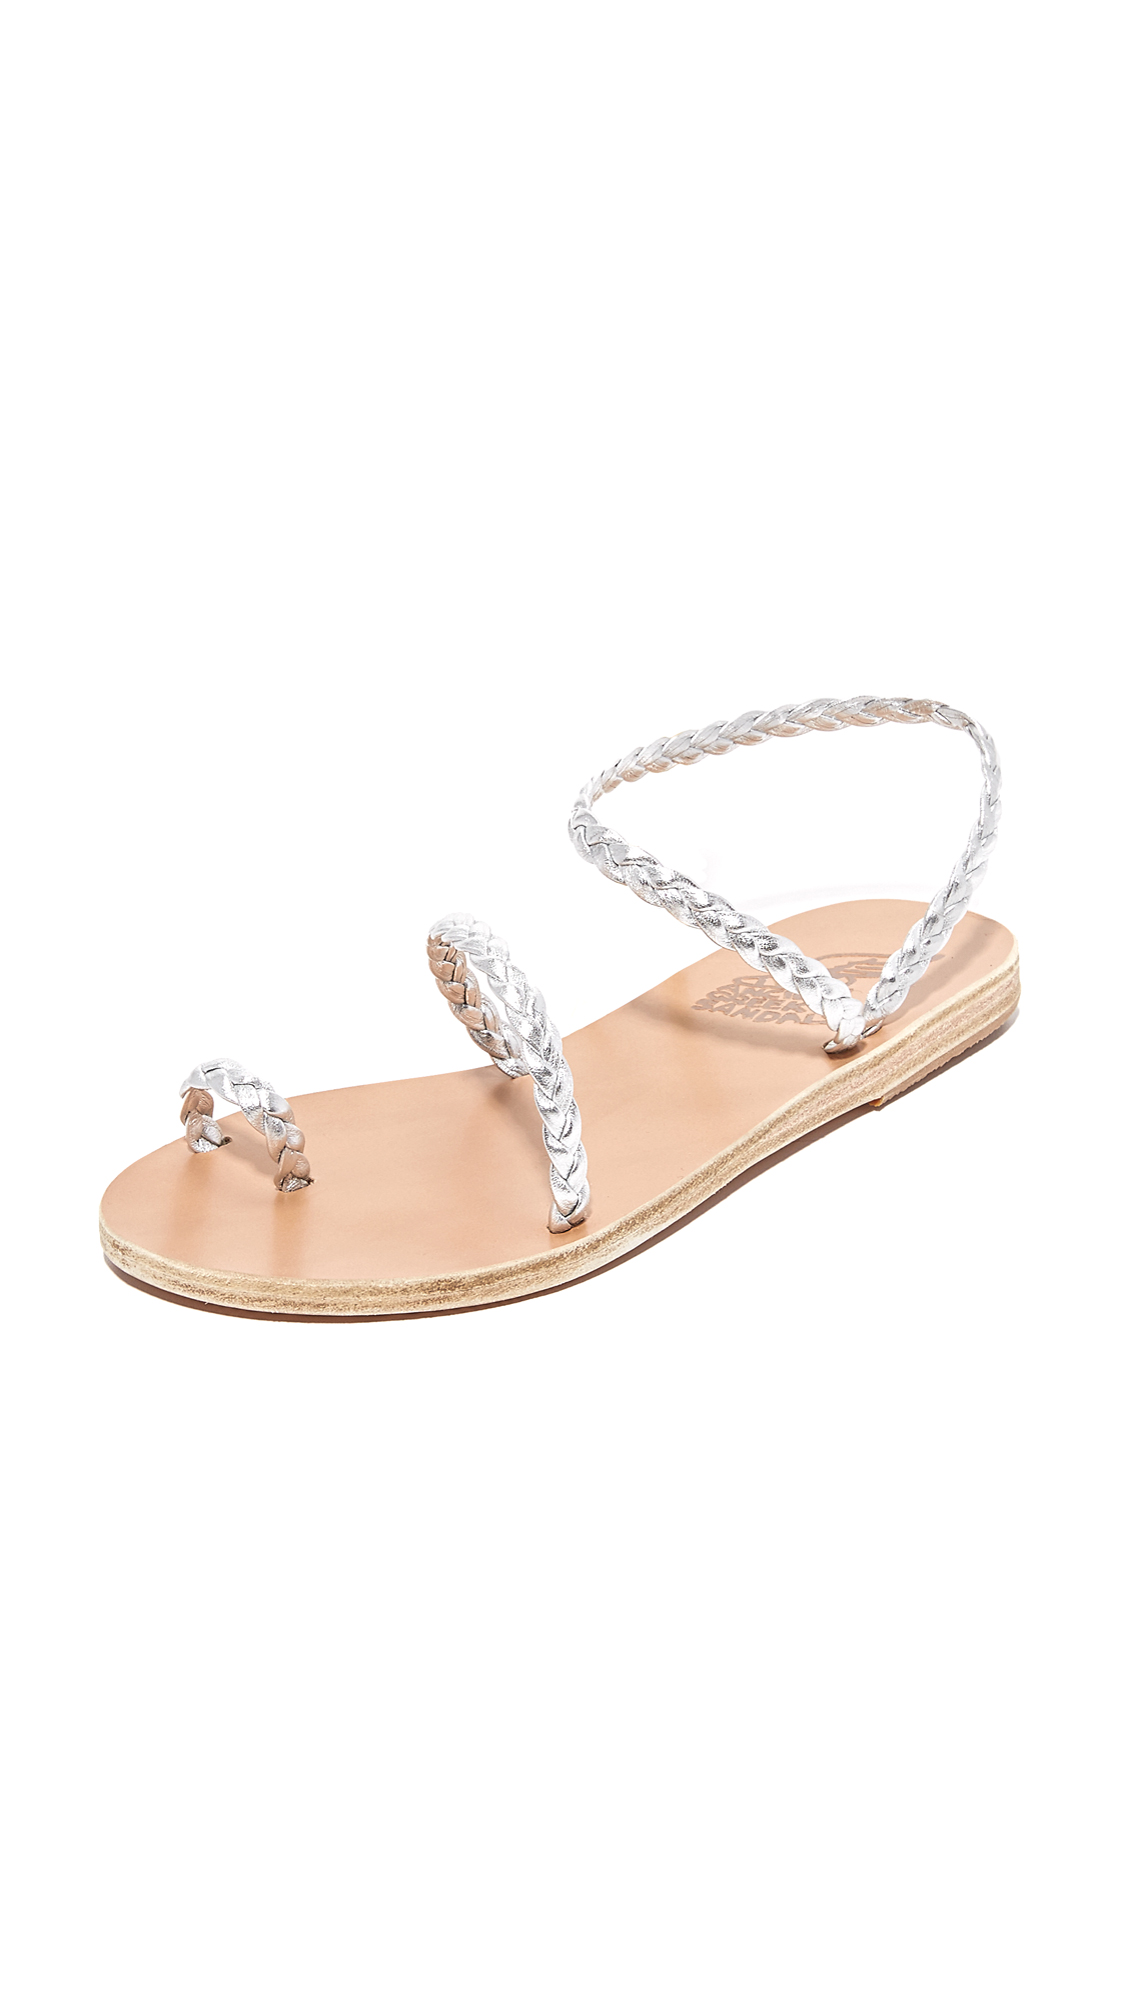 Ancient Greek Sandals Eleftheria Sandals - Silver